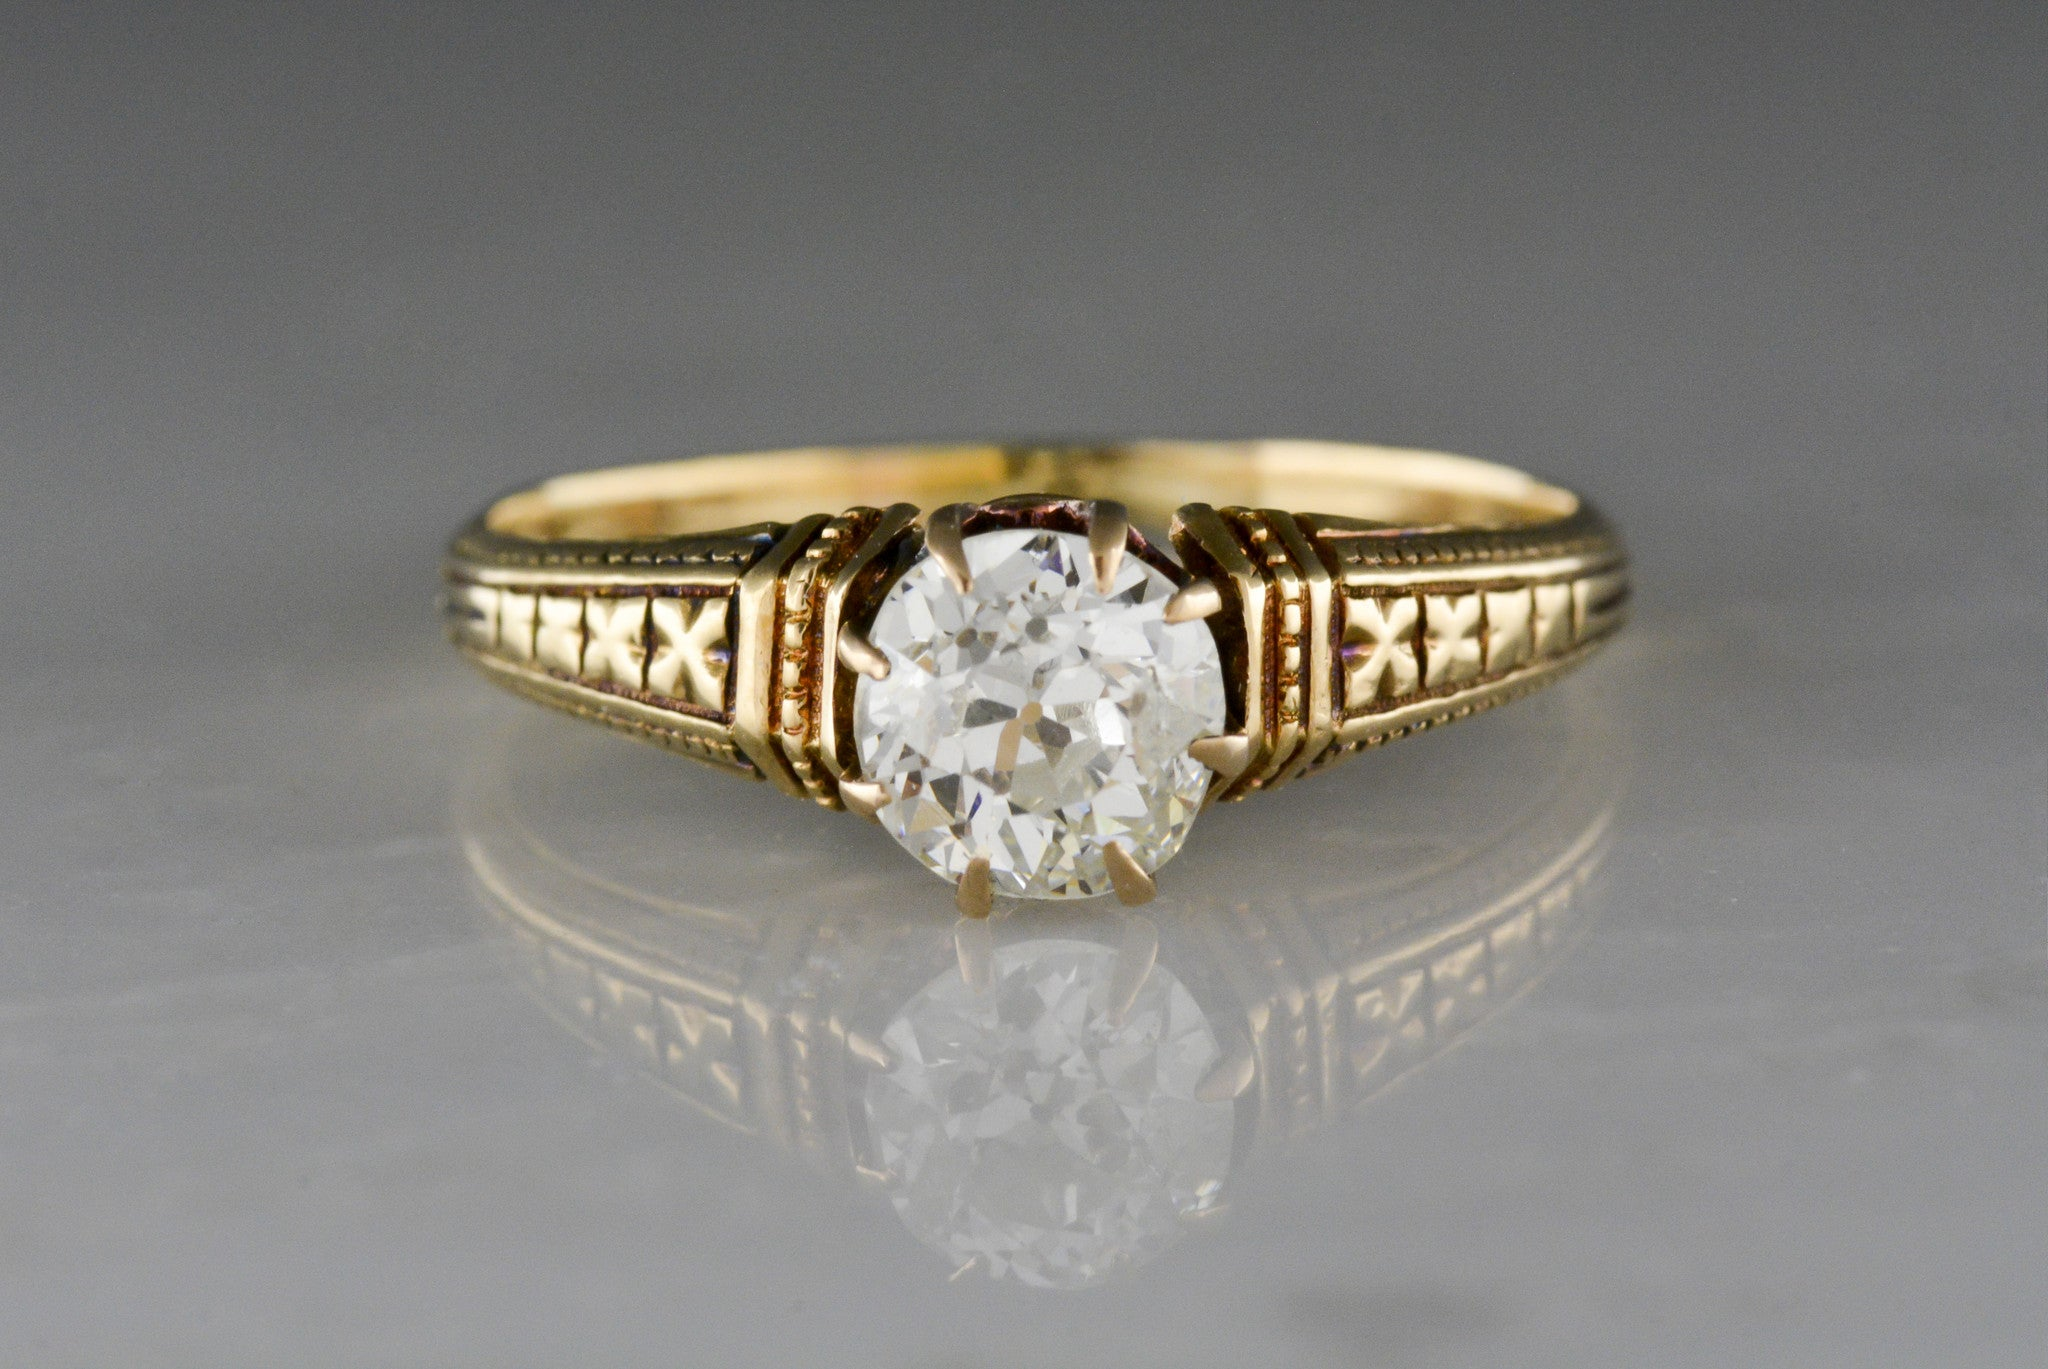 rings engagement jewelry product in cut the page old mine yellow diamond ring solitaire category castle p gold